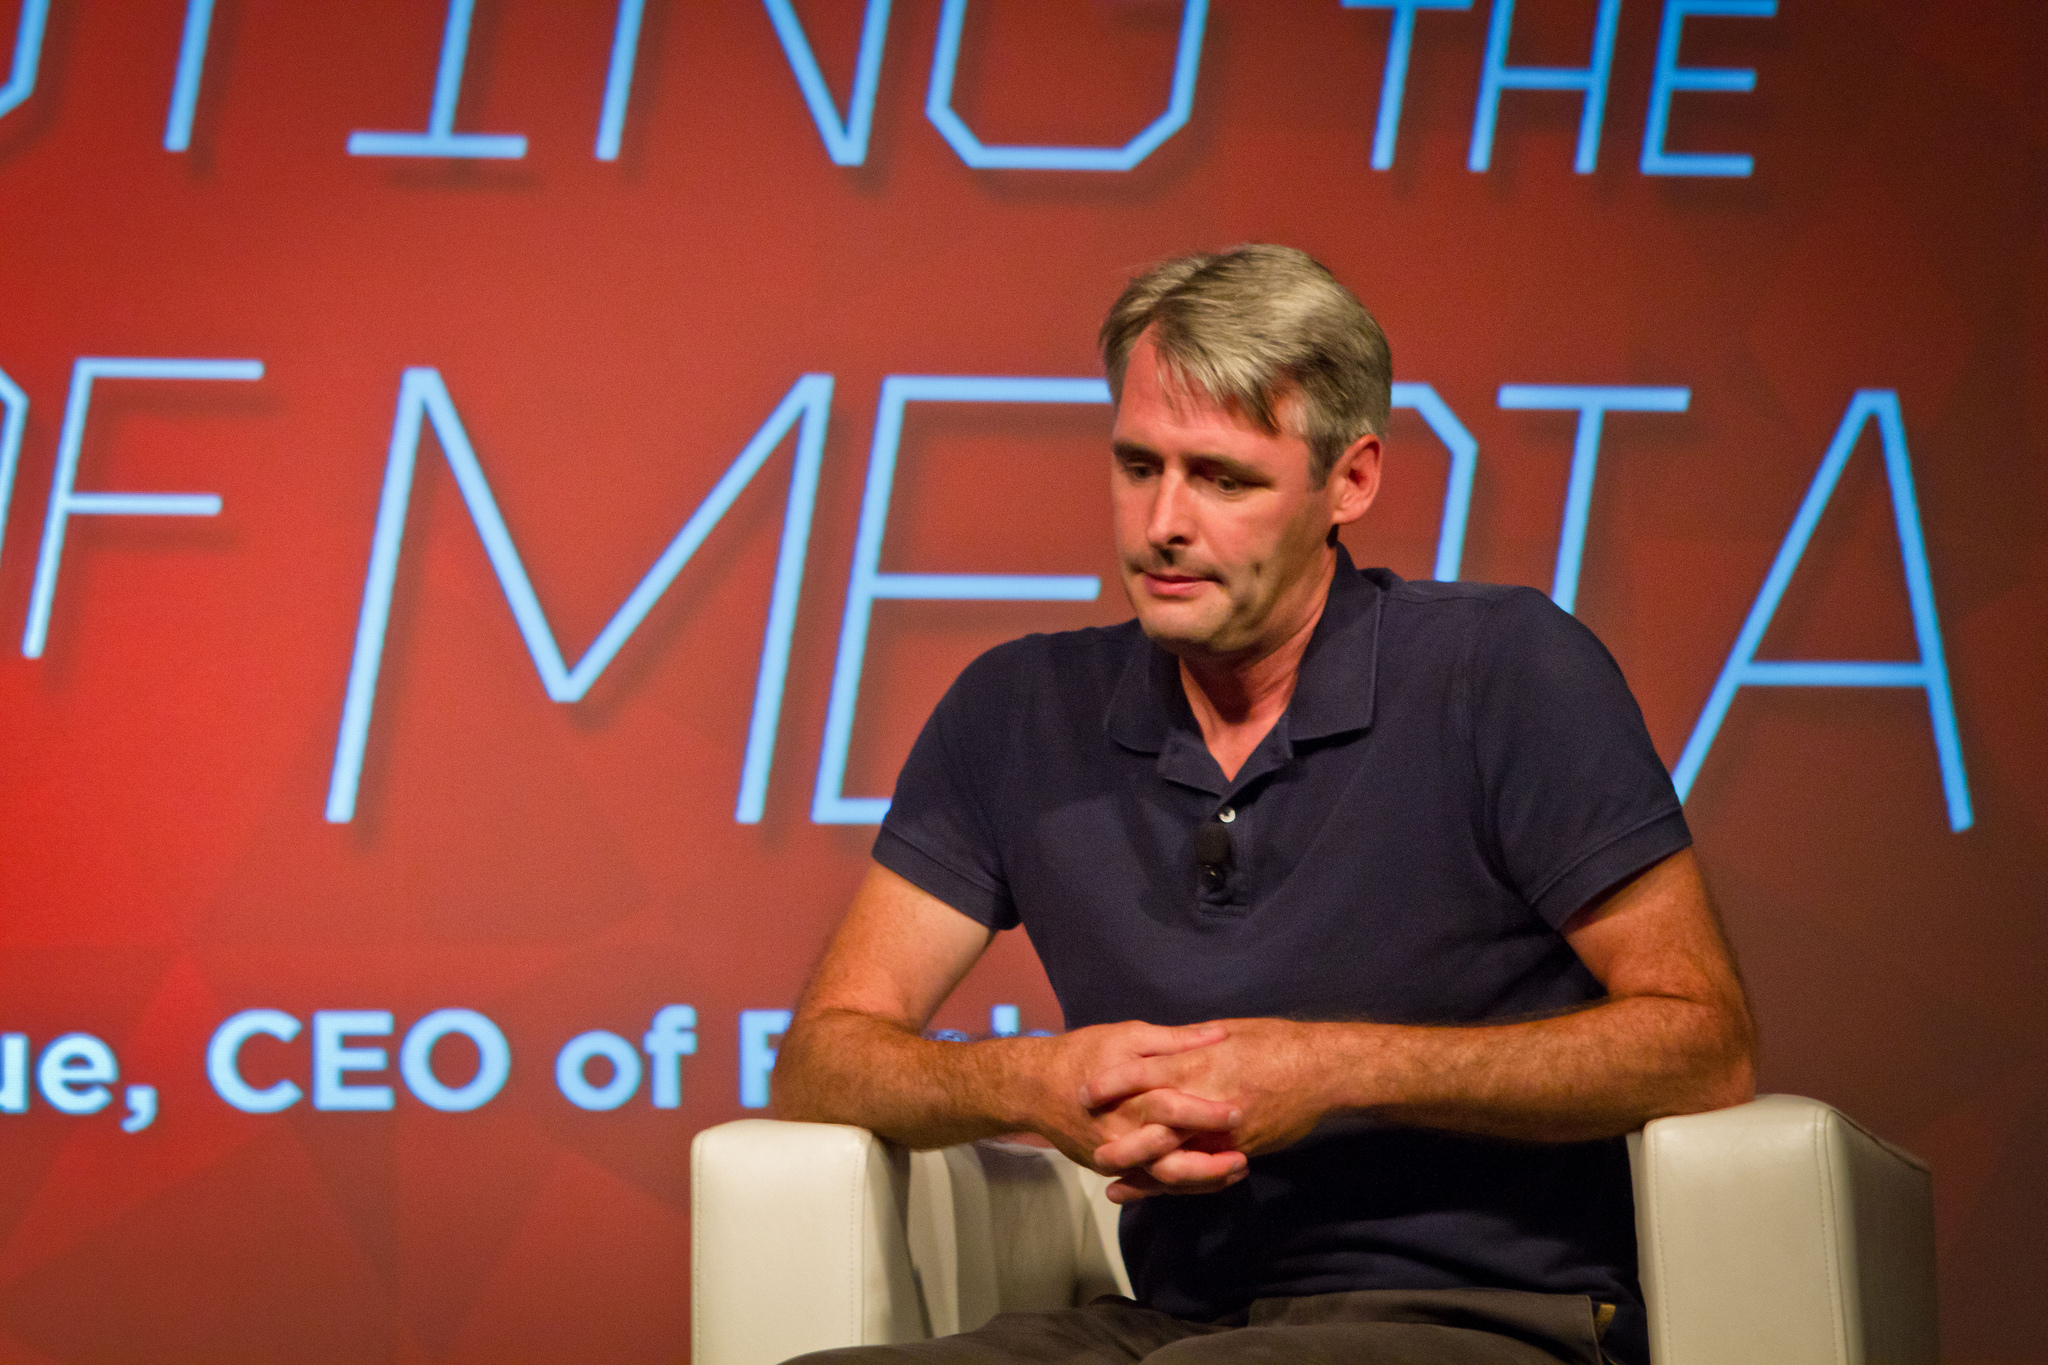 Flipboard CEO Mike McCue ponders the future of media on stage while at a ReadWriteMix event in August 2014.